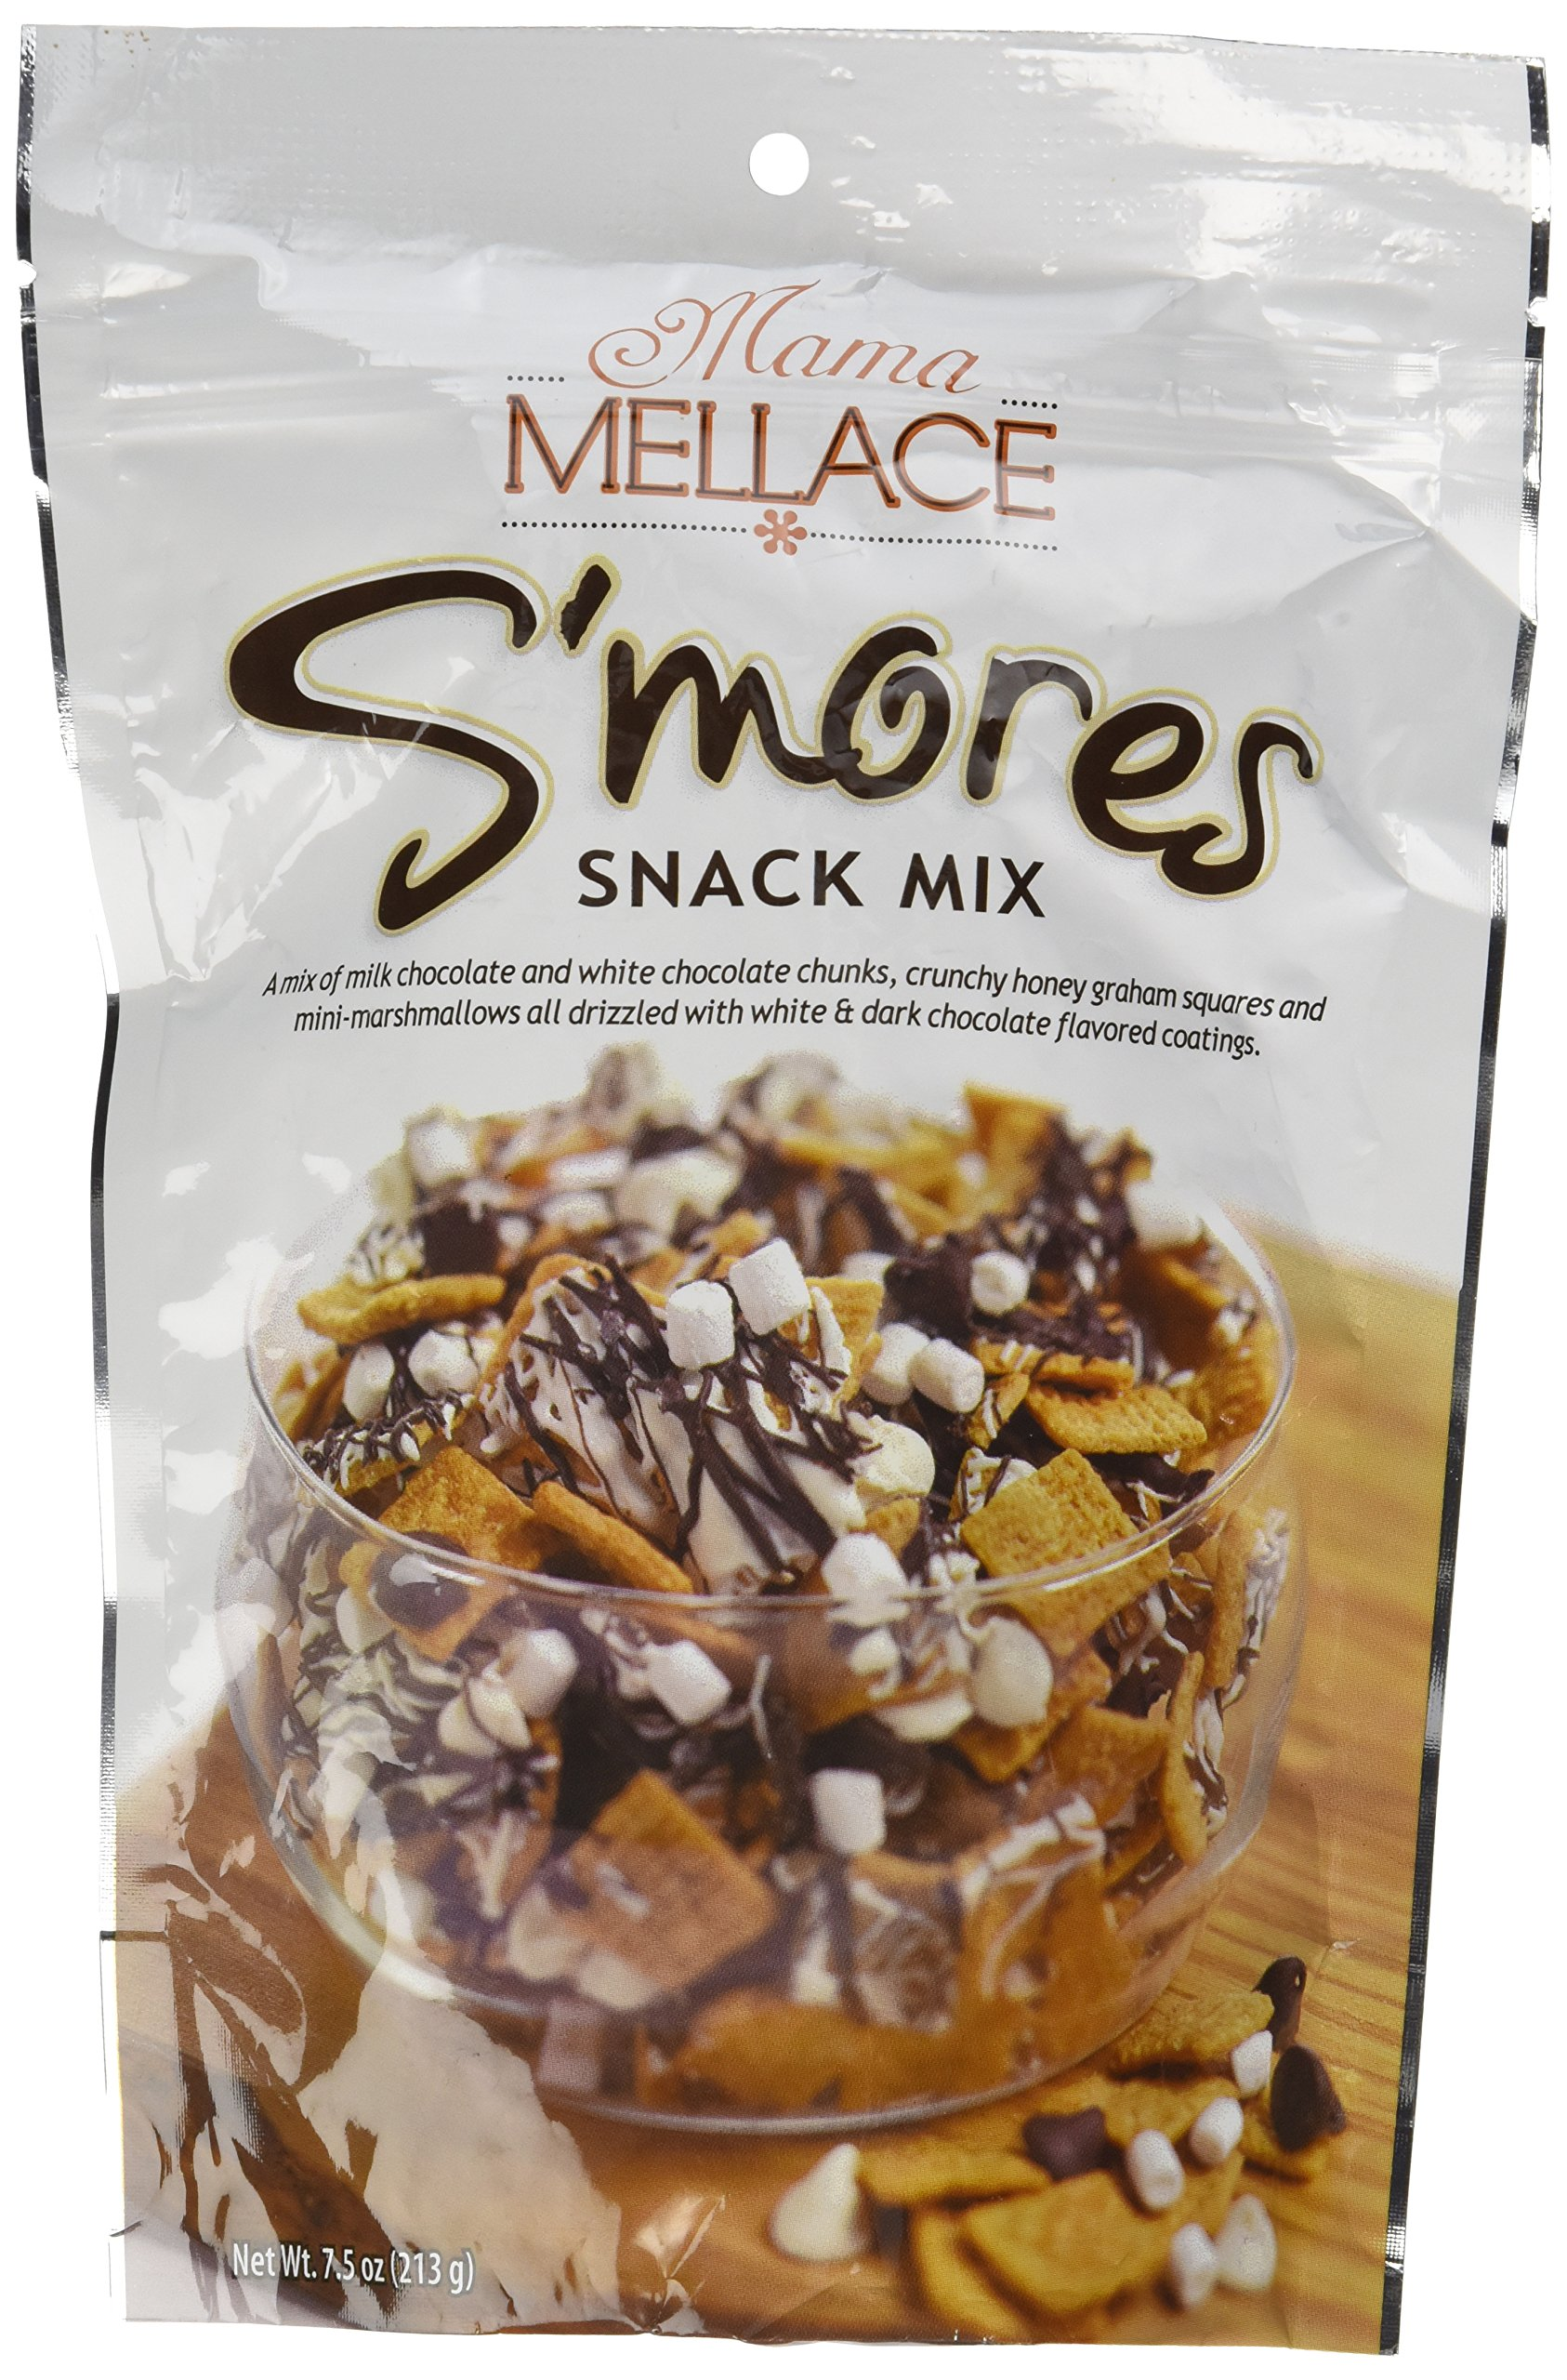 Mama Mellace S'mores Snack Mix 7.5 Oz (Pack of 3)